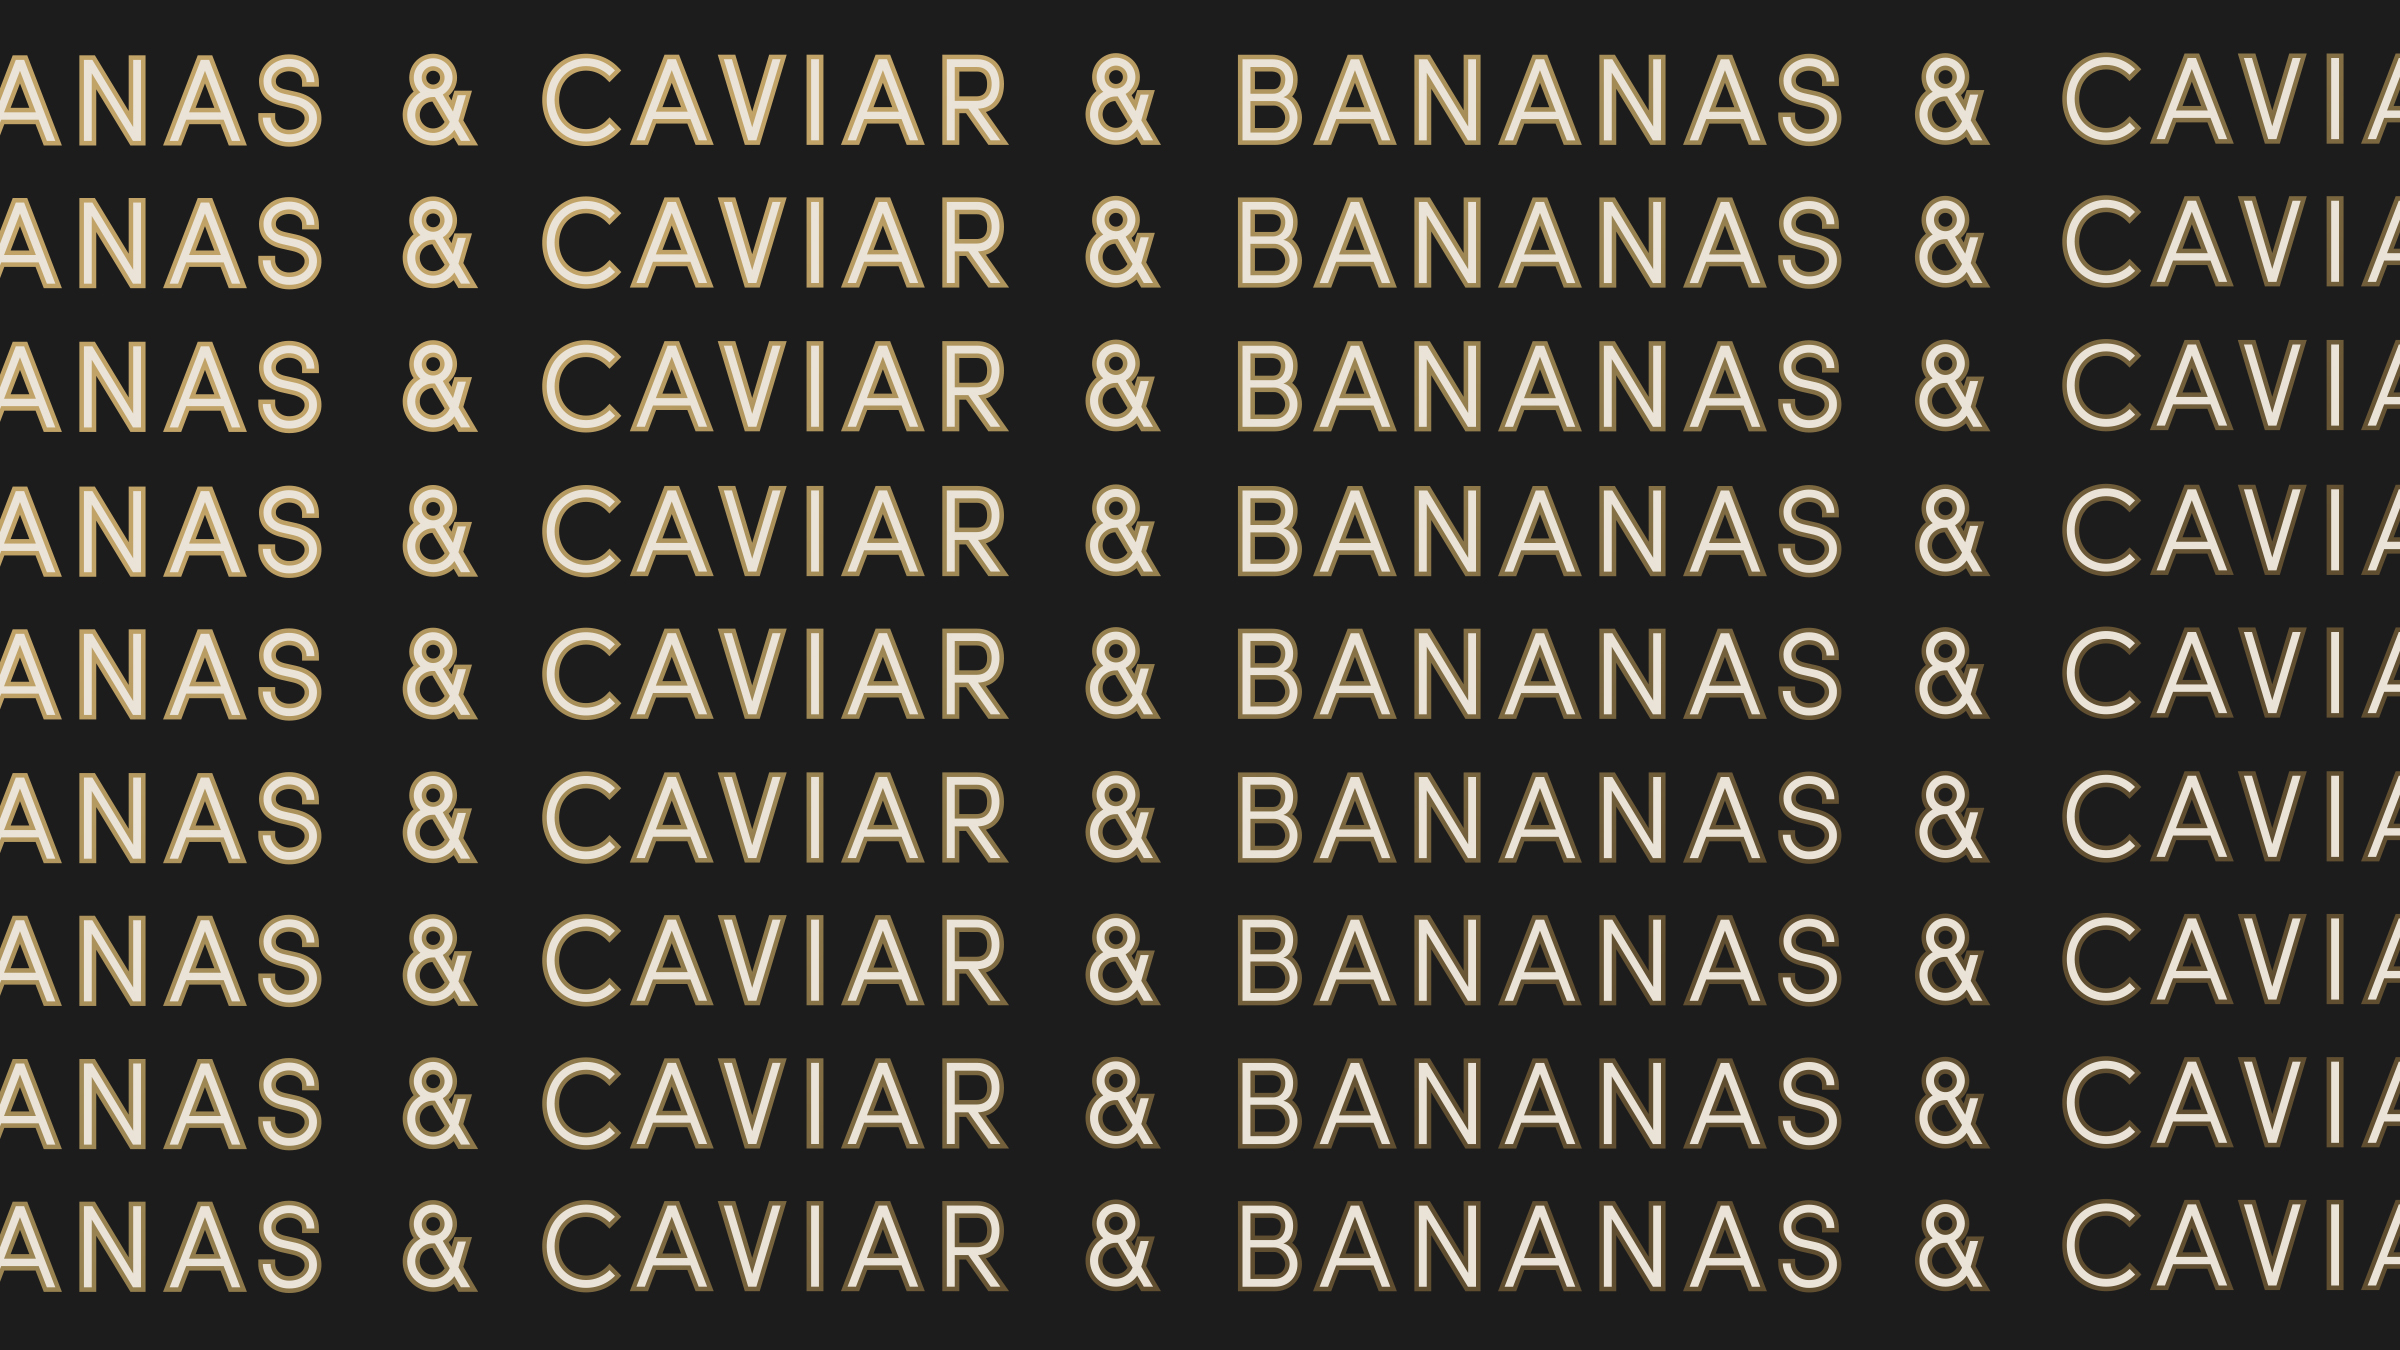 Caviar & Bananas Repeated Logo